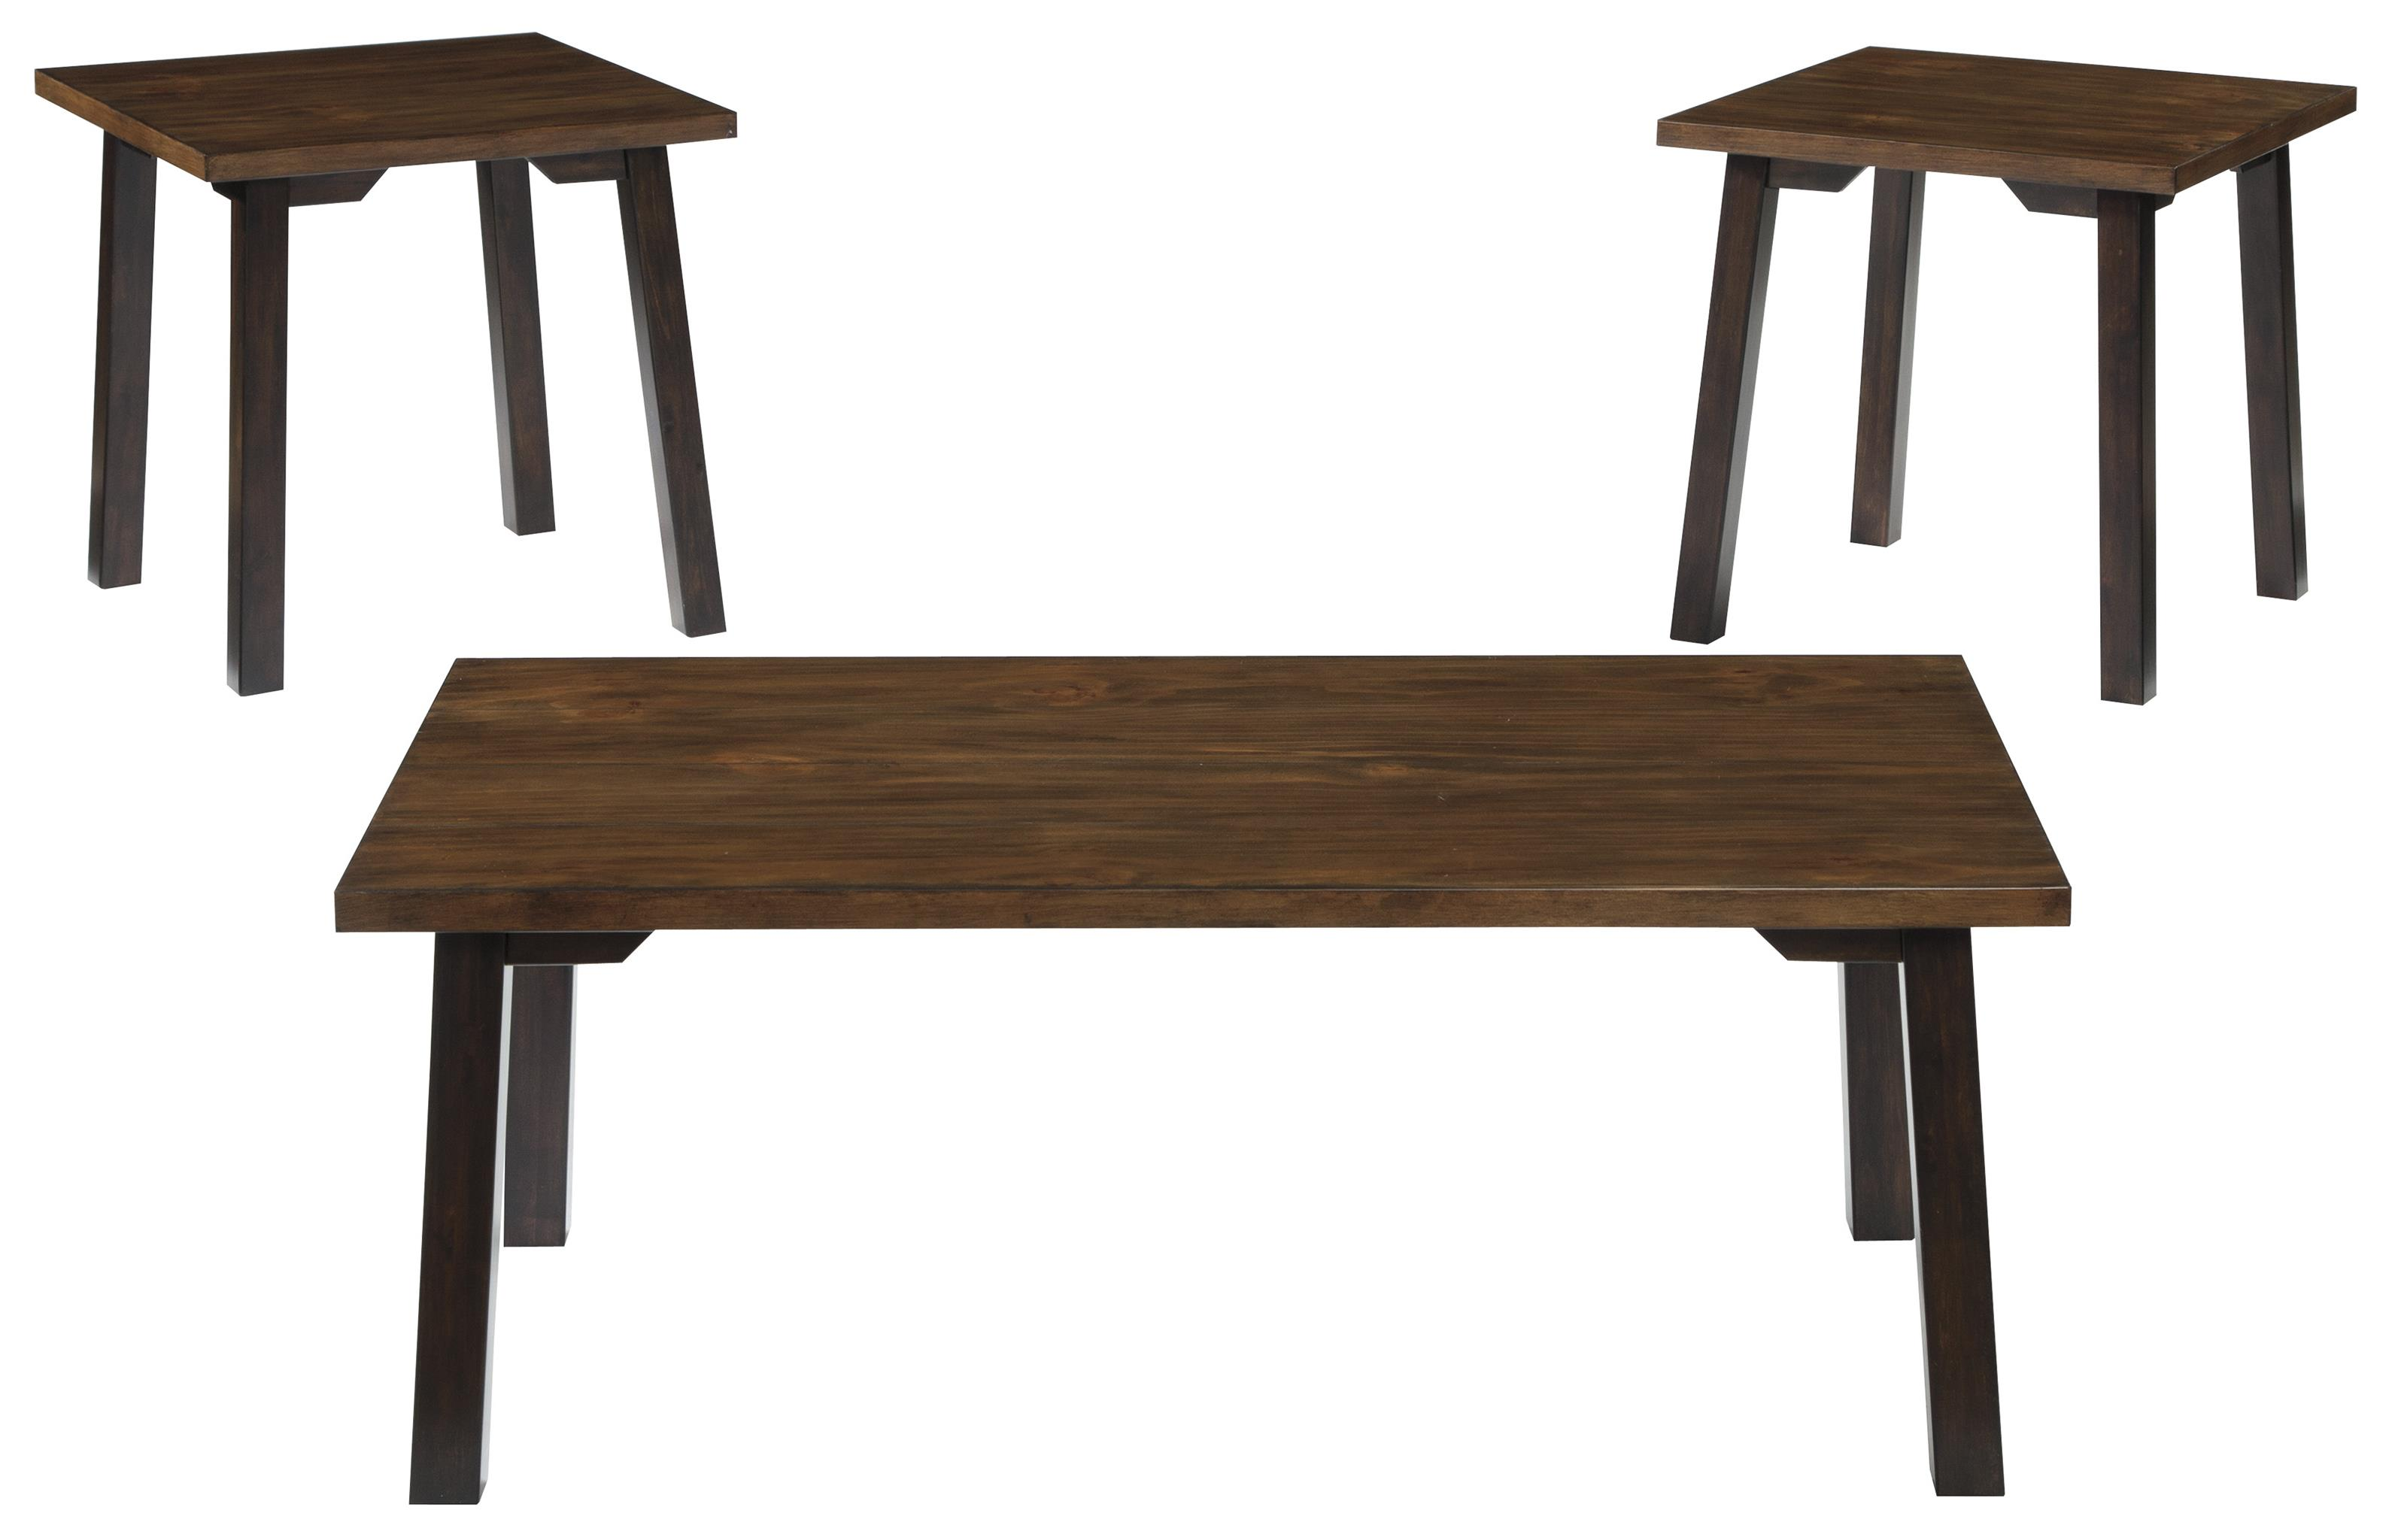 Signature Design by Ashley Latoon Occasional Table Set - Item Number: T205-13